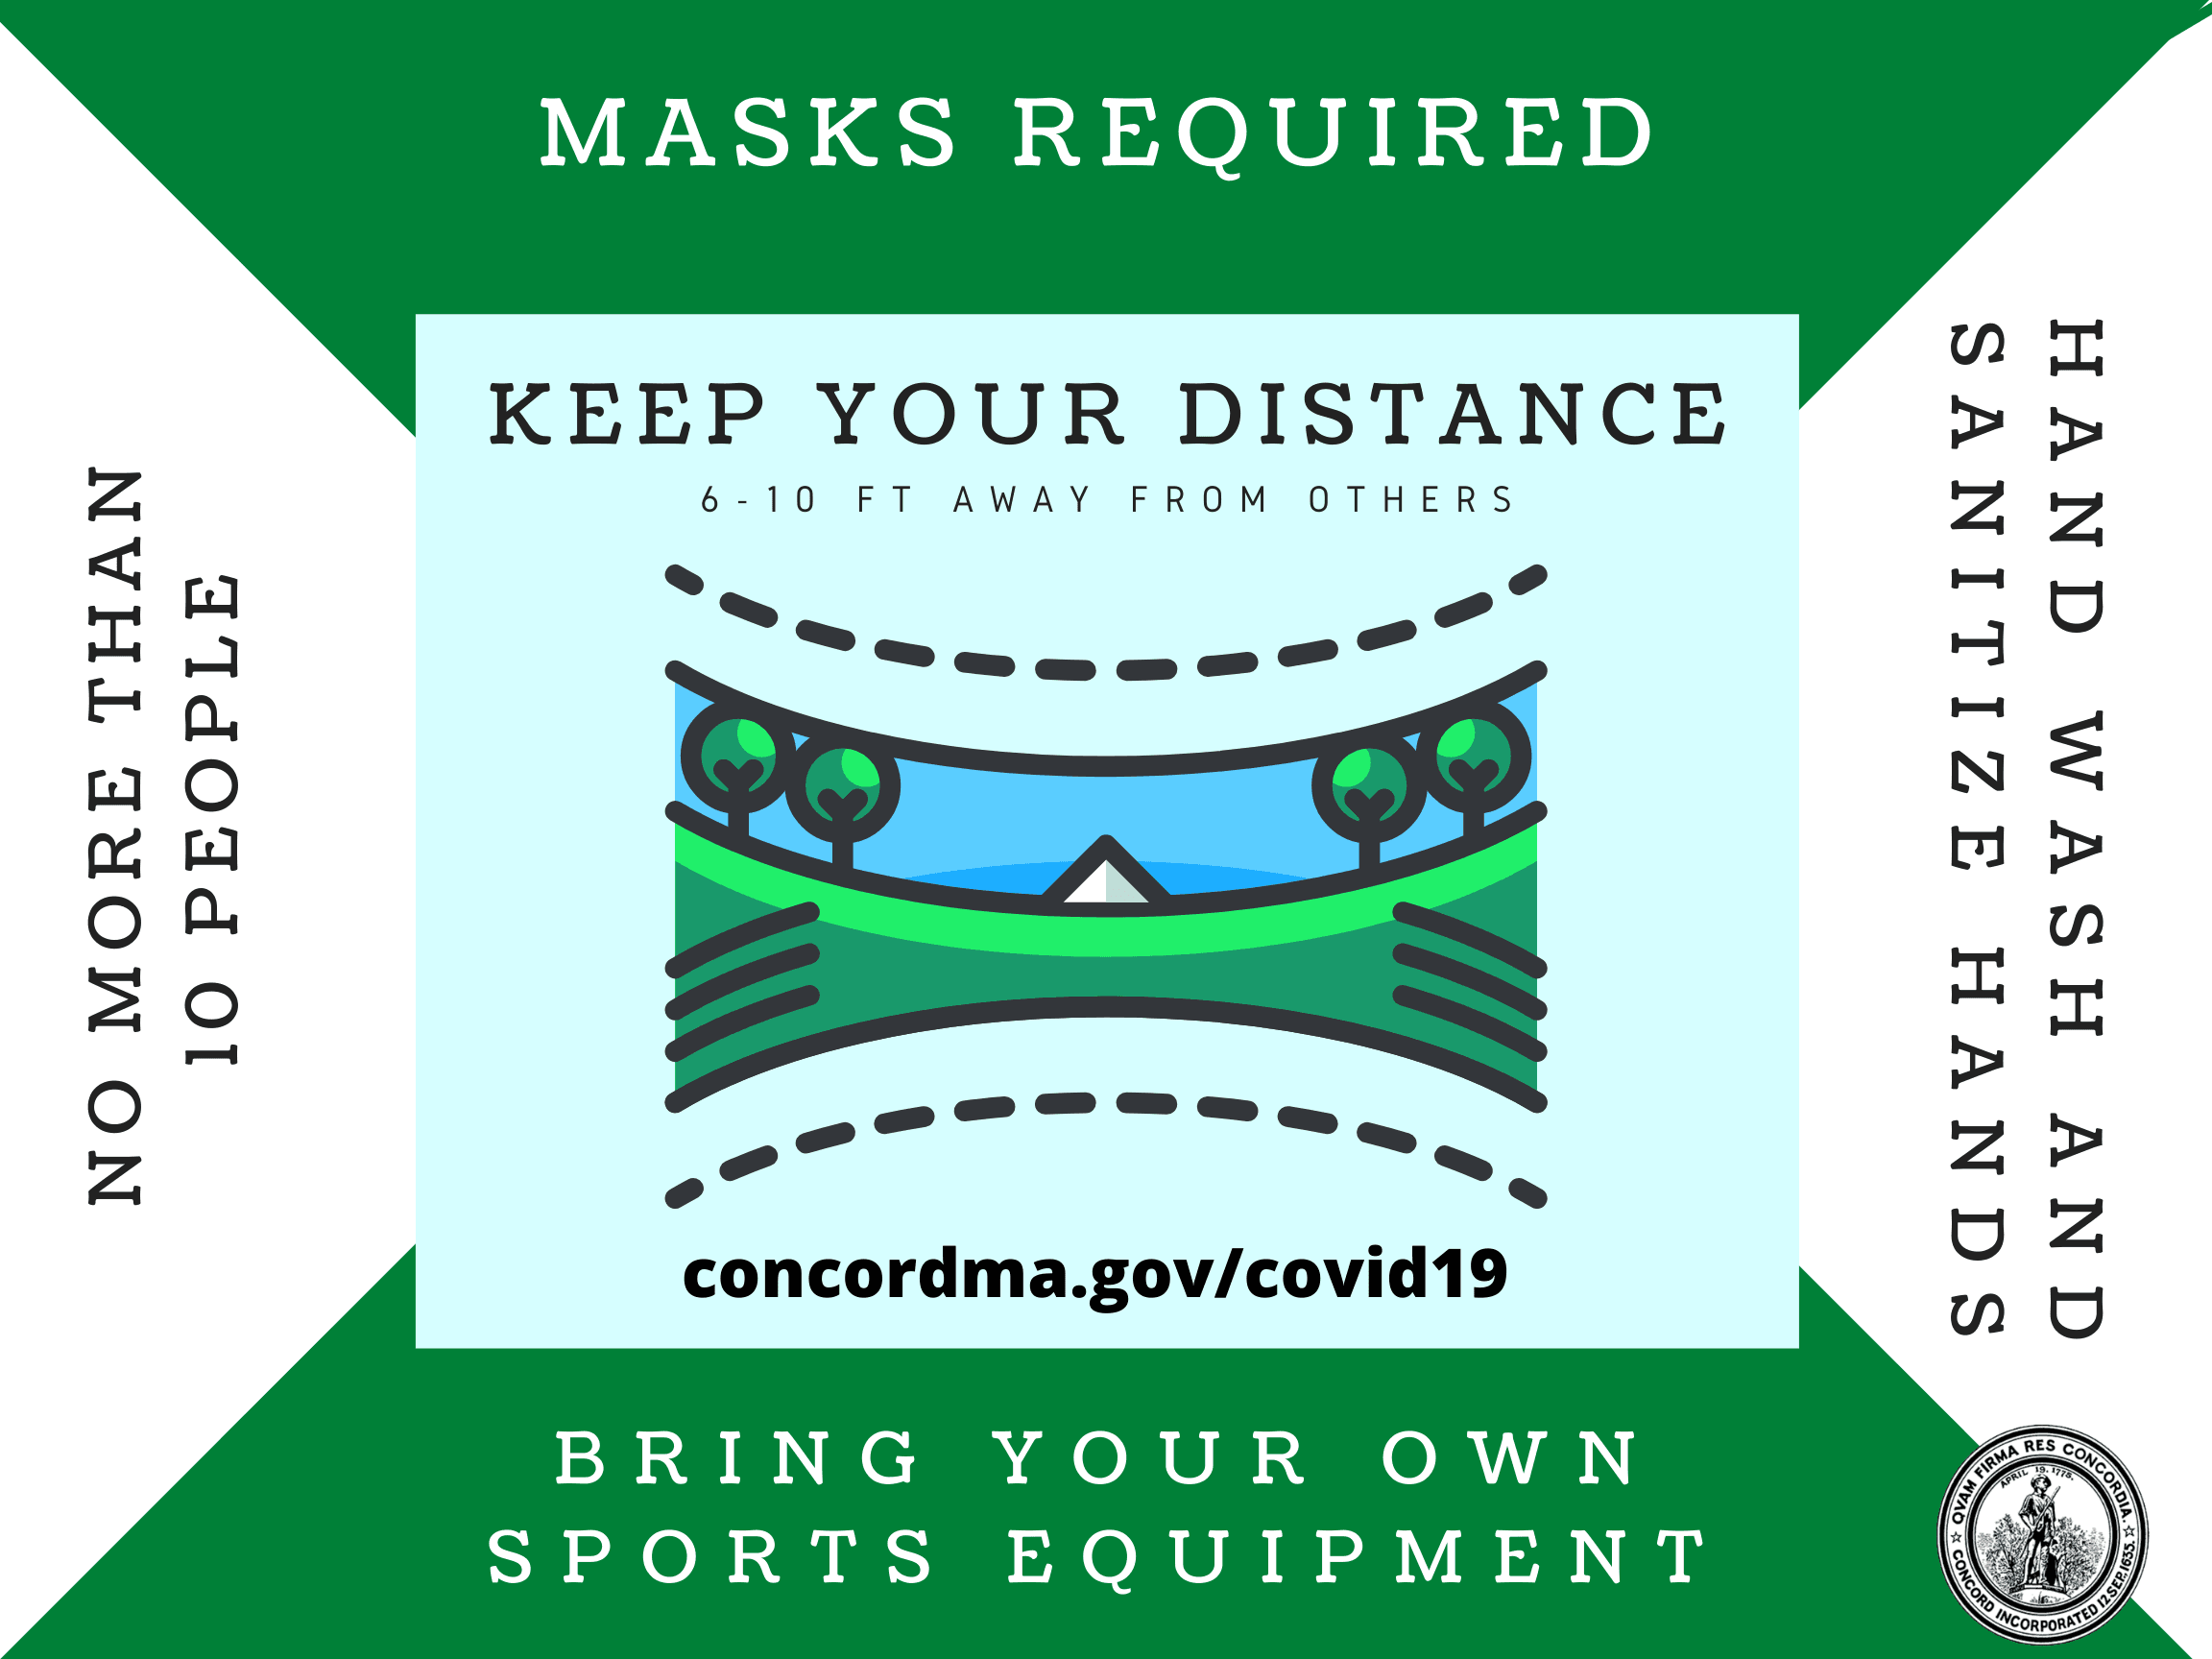 Keep your distance at parks and sport fields